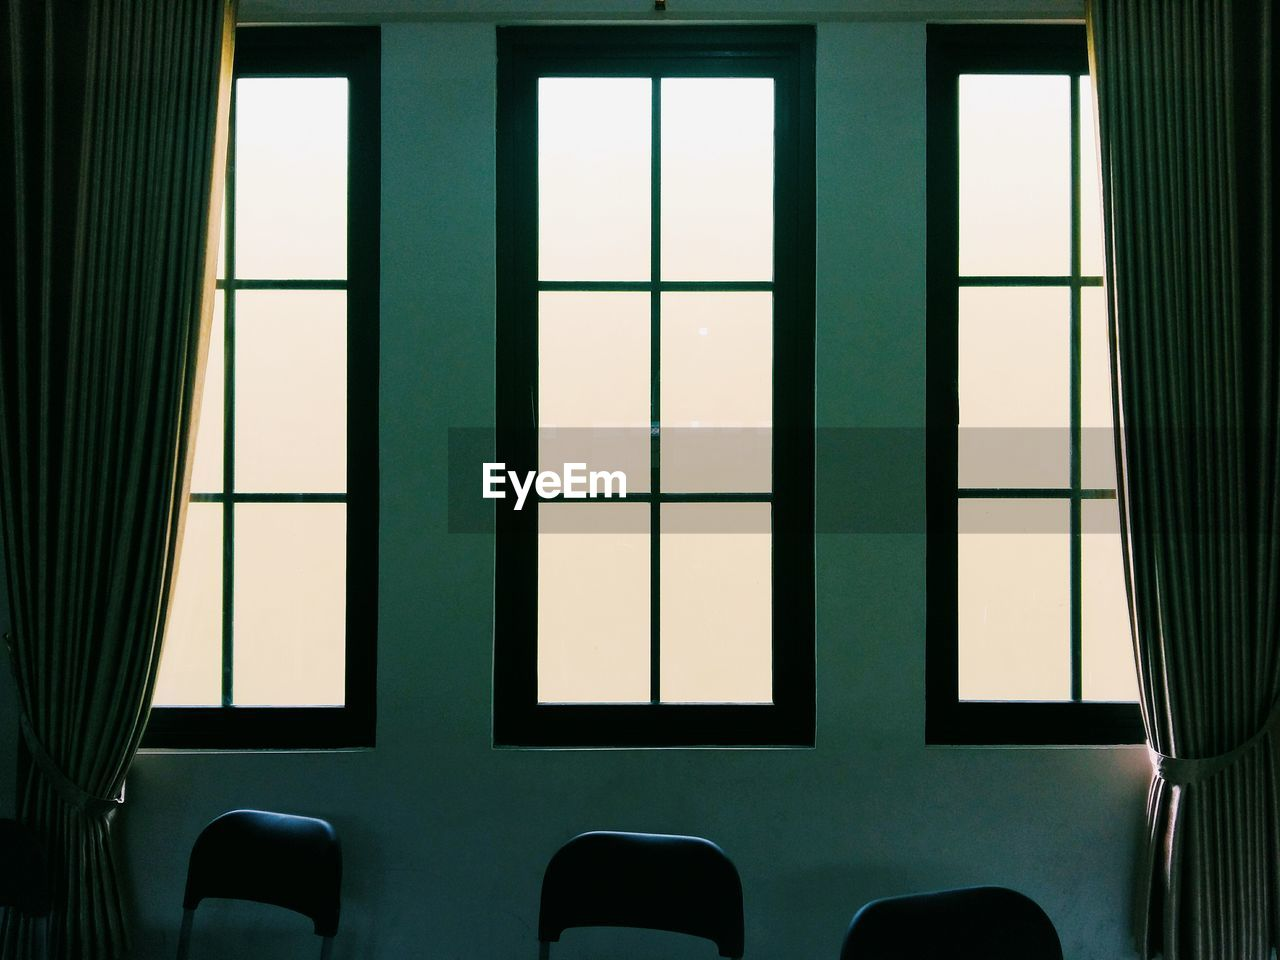 window, indoors, no people, seat, glass - material, day, built structure, architecture, transparent, close-up, absence, chair, domestic room, illuminated, empty, geometric shape, building, pattern, green color, window frame